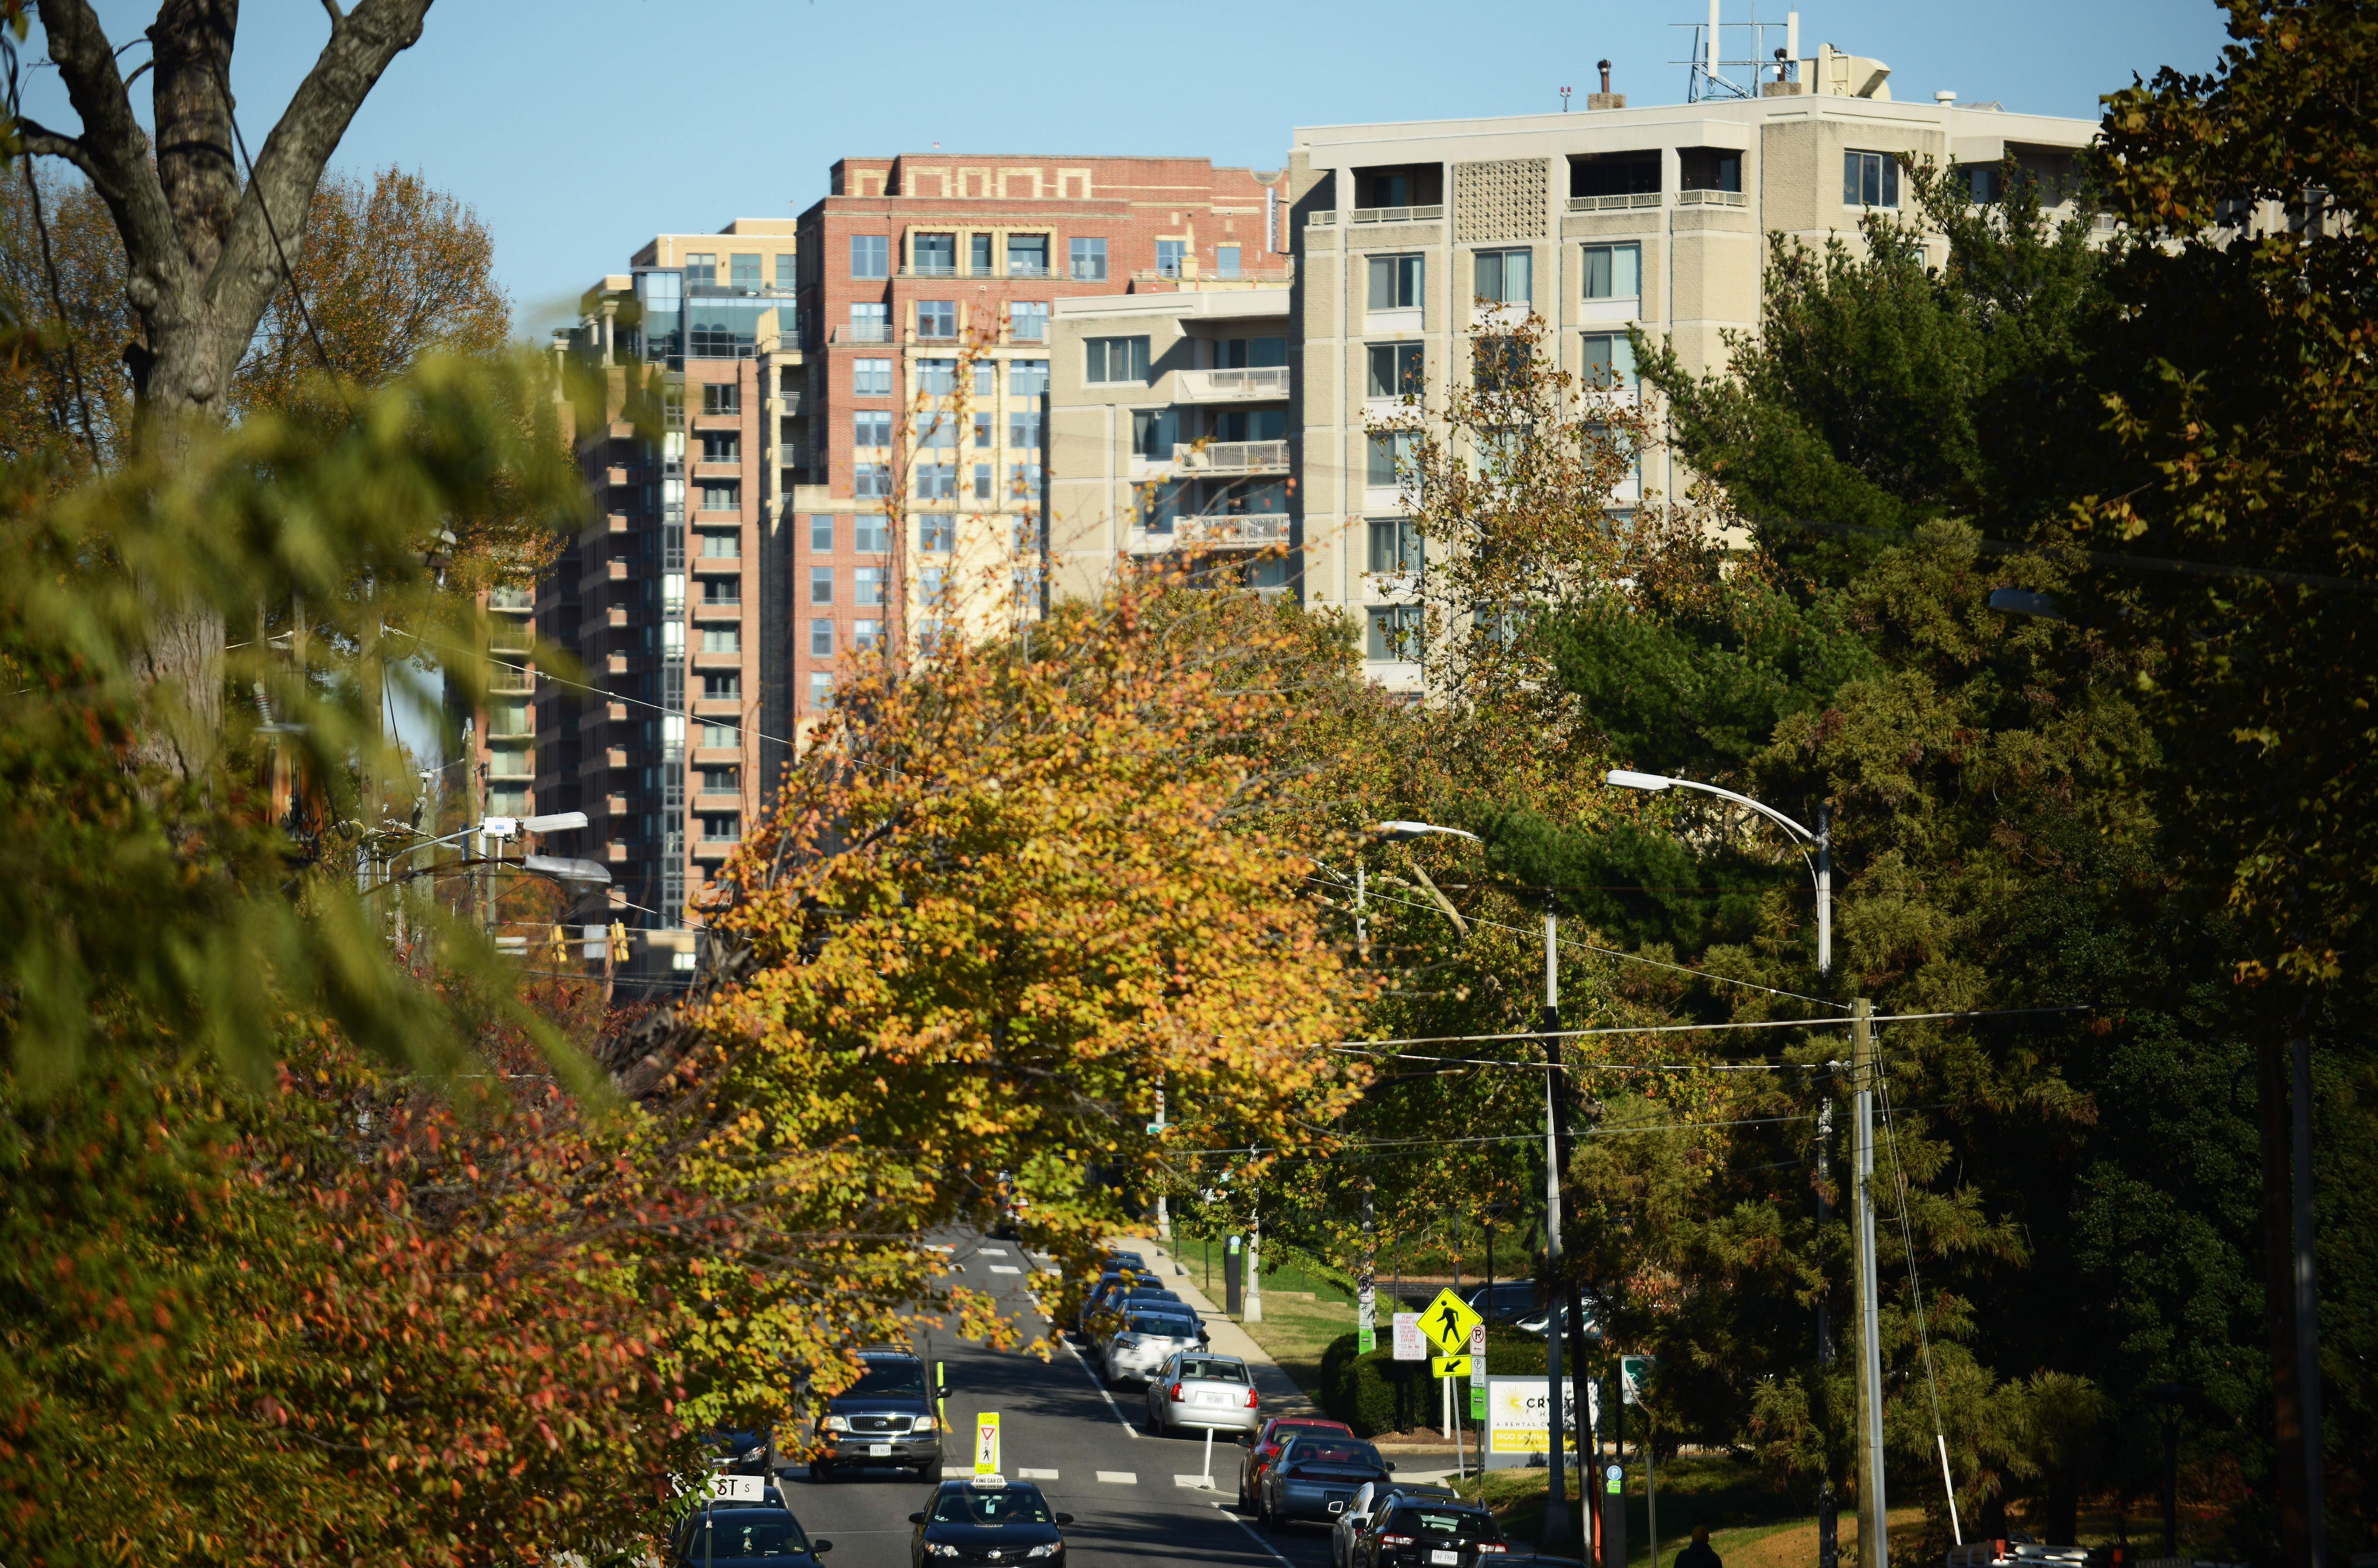 A line of apartment buildings in Arlington, Virginia, adjacent to trees and streetlights.